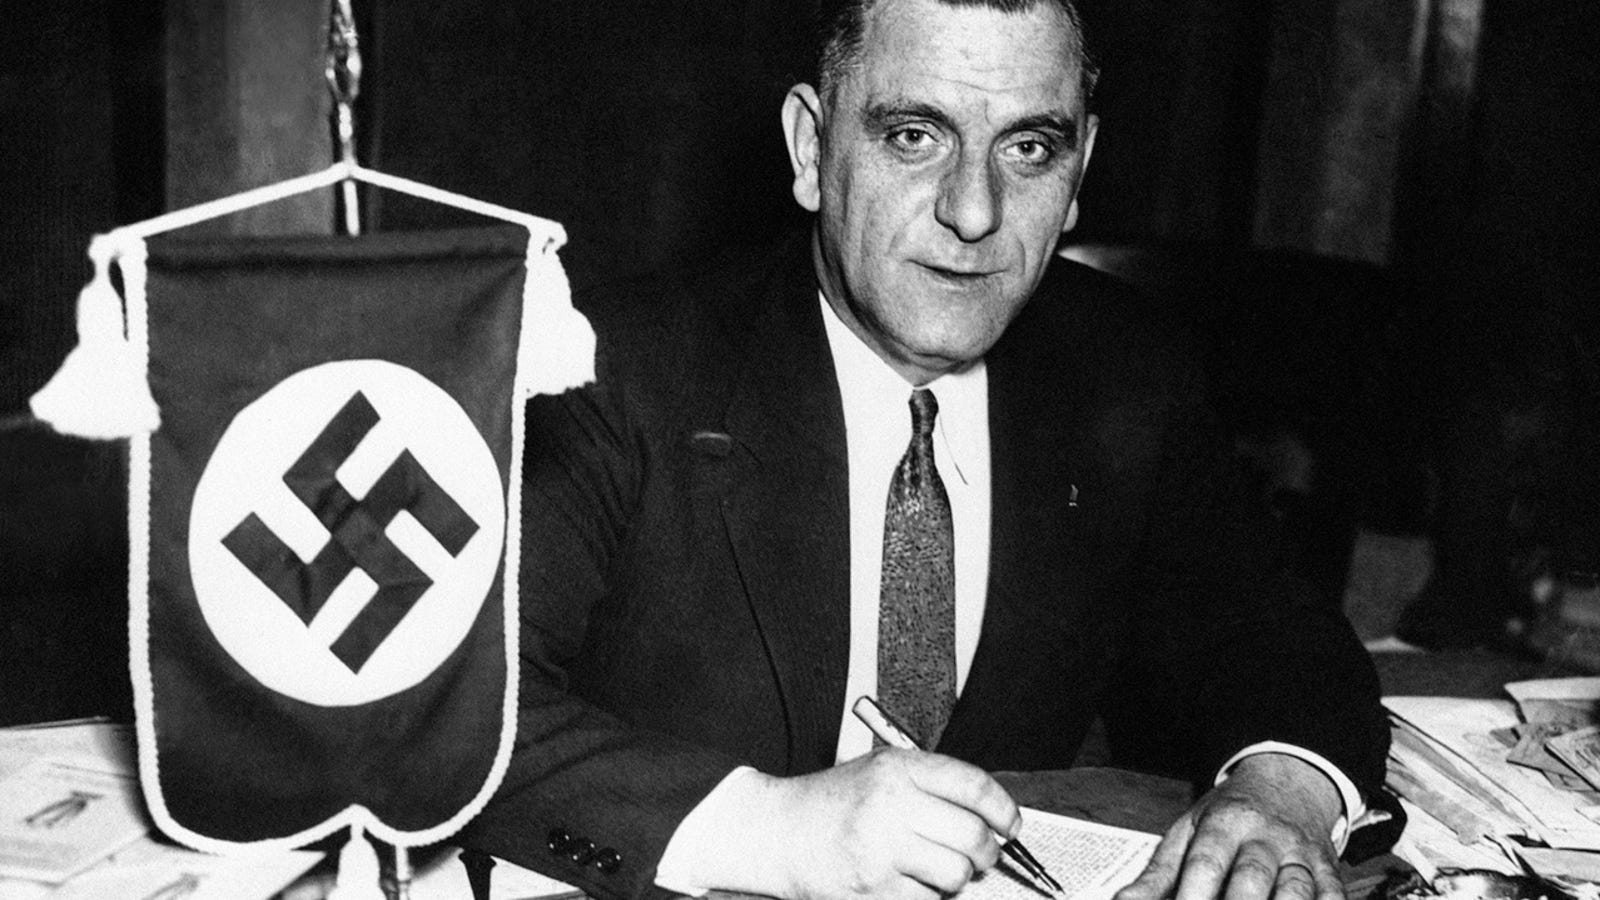 photo image America's Top Nazi Sued Warner Bros. for Libel in 1939 Because He Didn't Like the Movie Confessions of a Nazi Spy